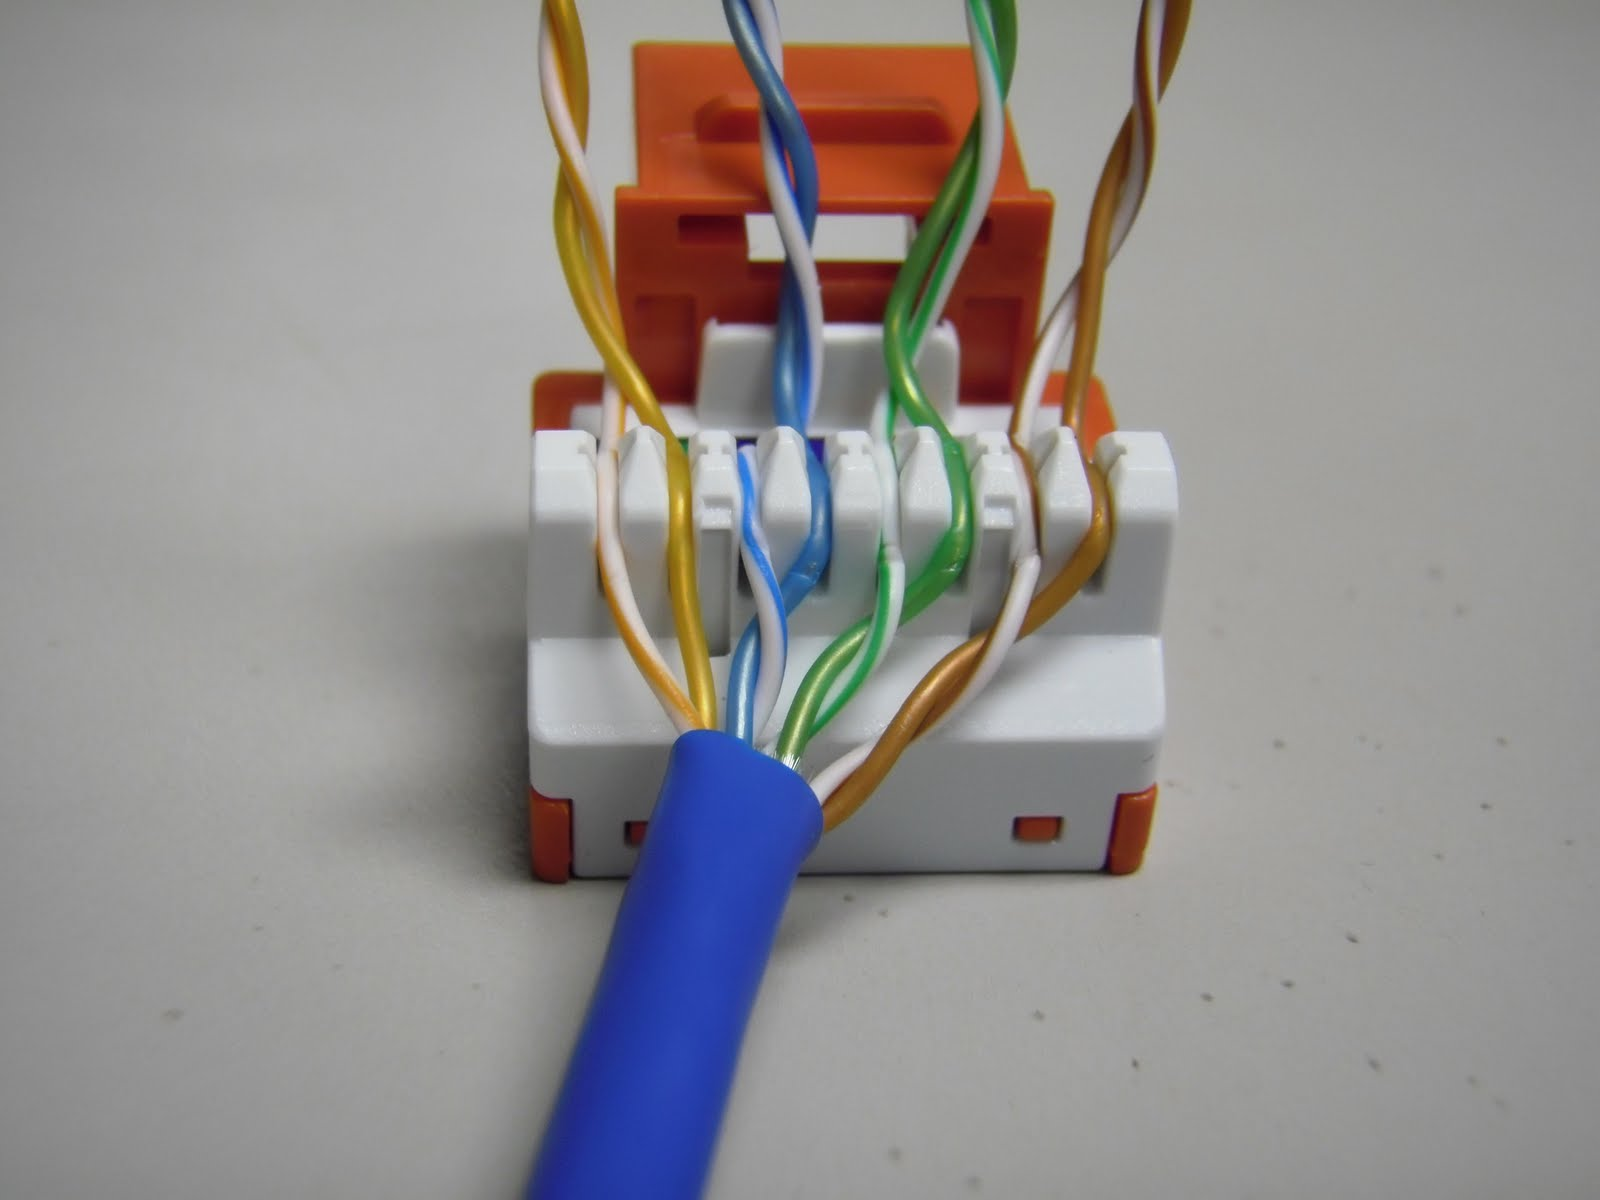 568b Jack Wiring Library Cat5 Crossover Diagram The Trench How To Punch Down Cat5e Cat6 Keystone Jacks Ethernet Cable